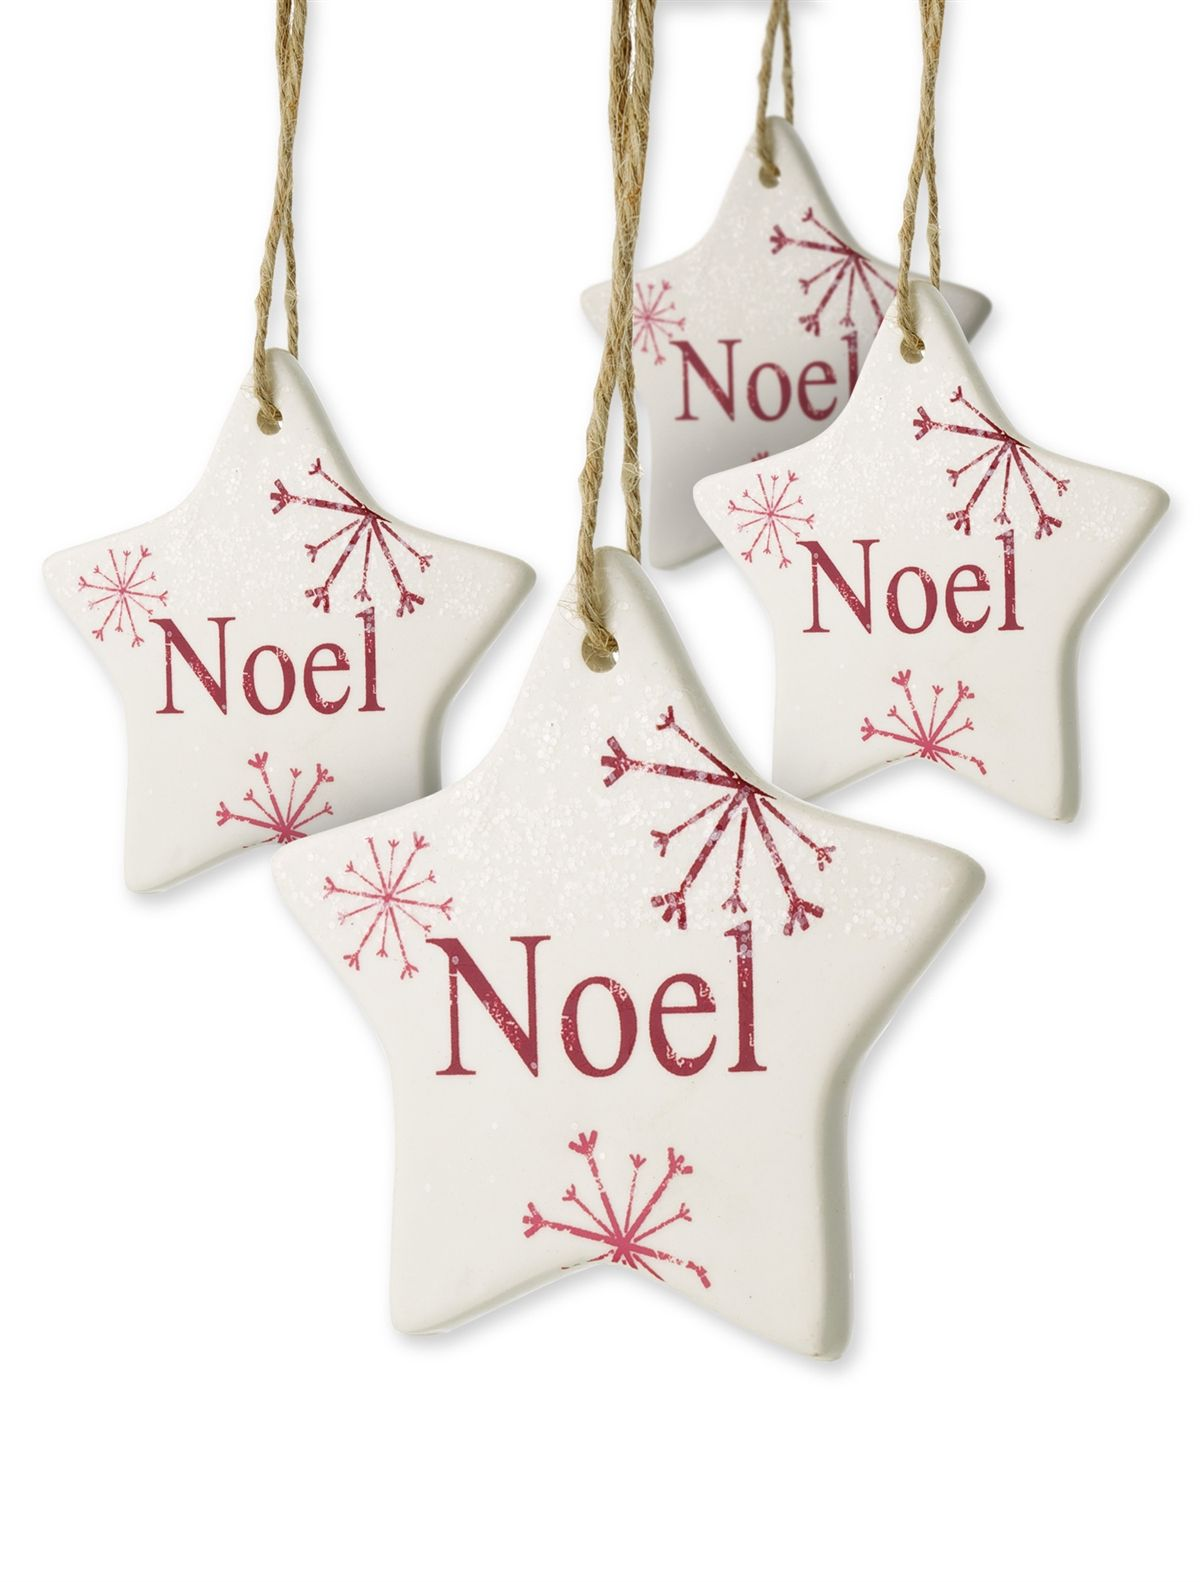 White Ceramic Star Ornaments Christmas Ornaments And Decorations For Your Artificial Christ Christmas Ornaments Christmas Ornament Sets White Christmas Decor